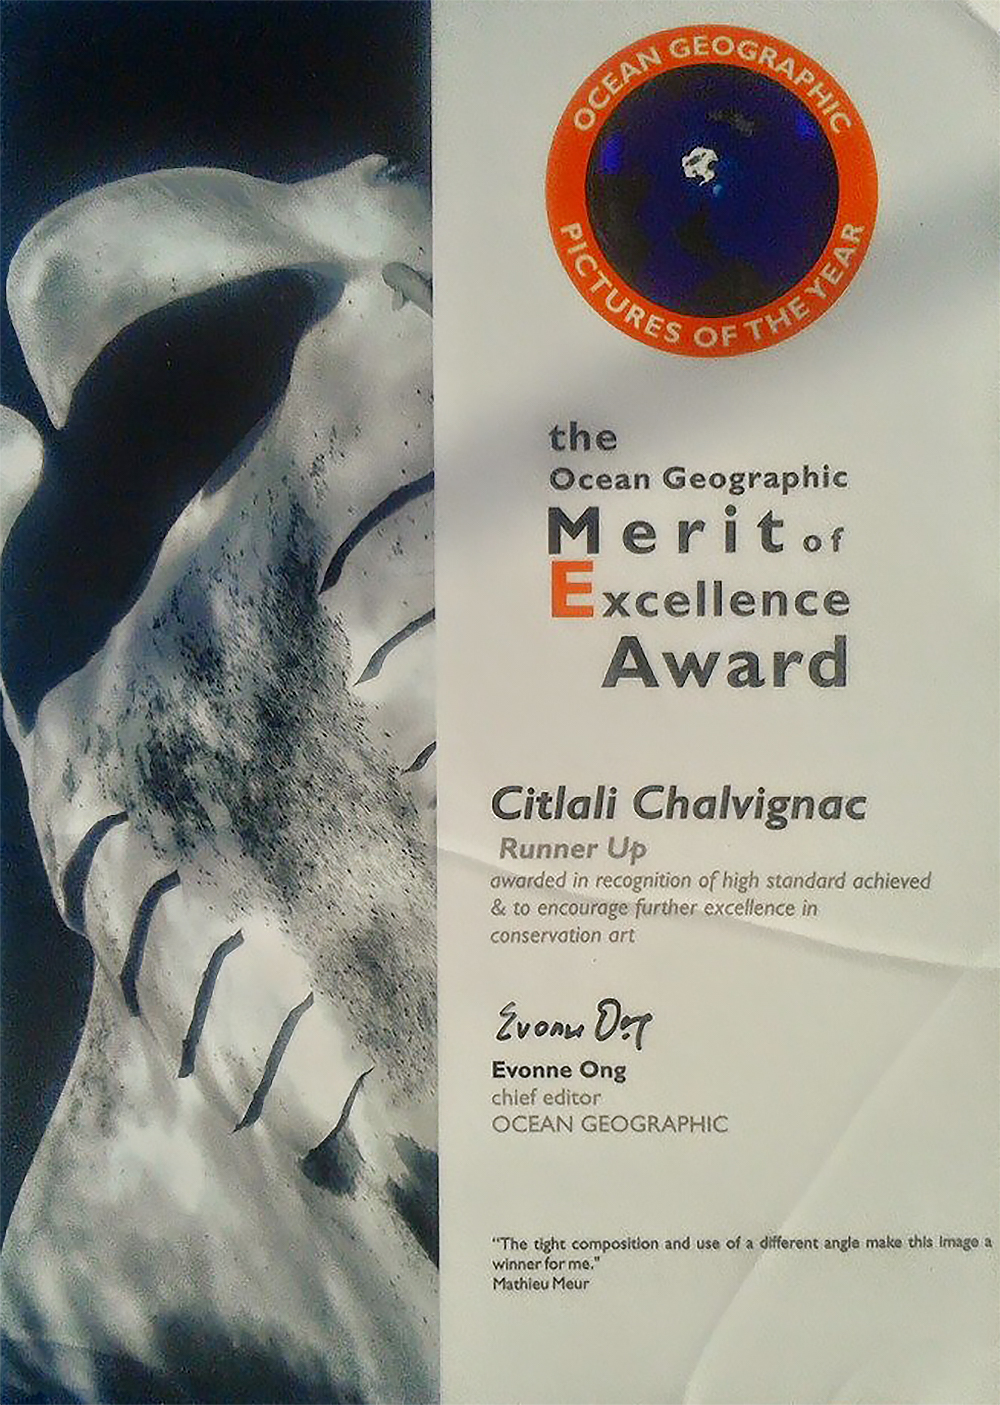 The Ocean Geographic Merit of Excellence Award Citlali Chalvignac